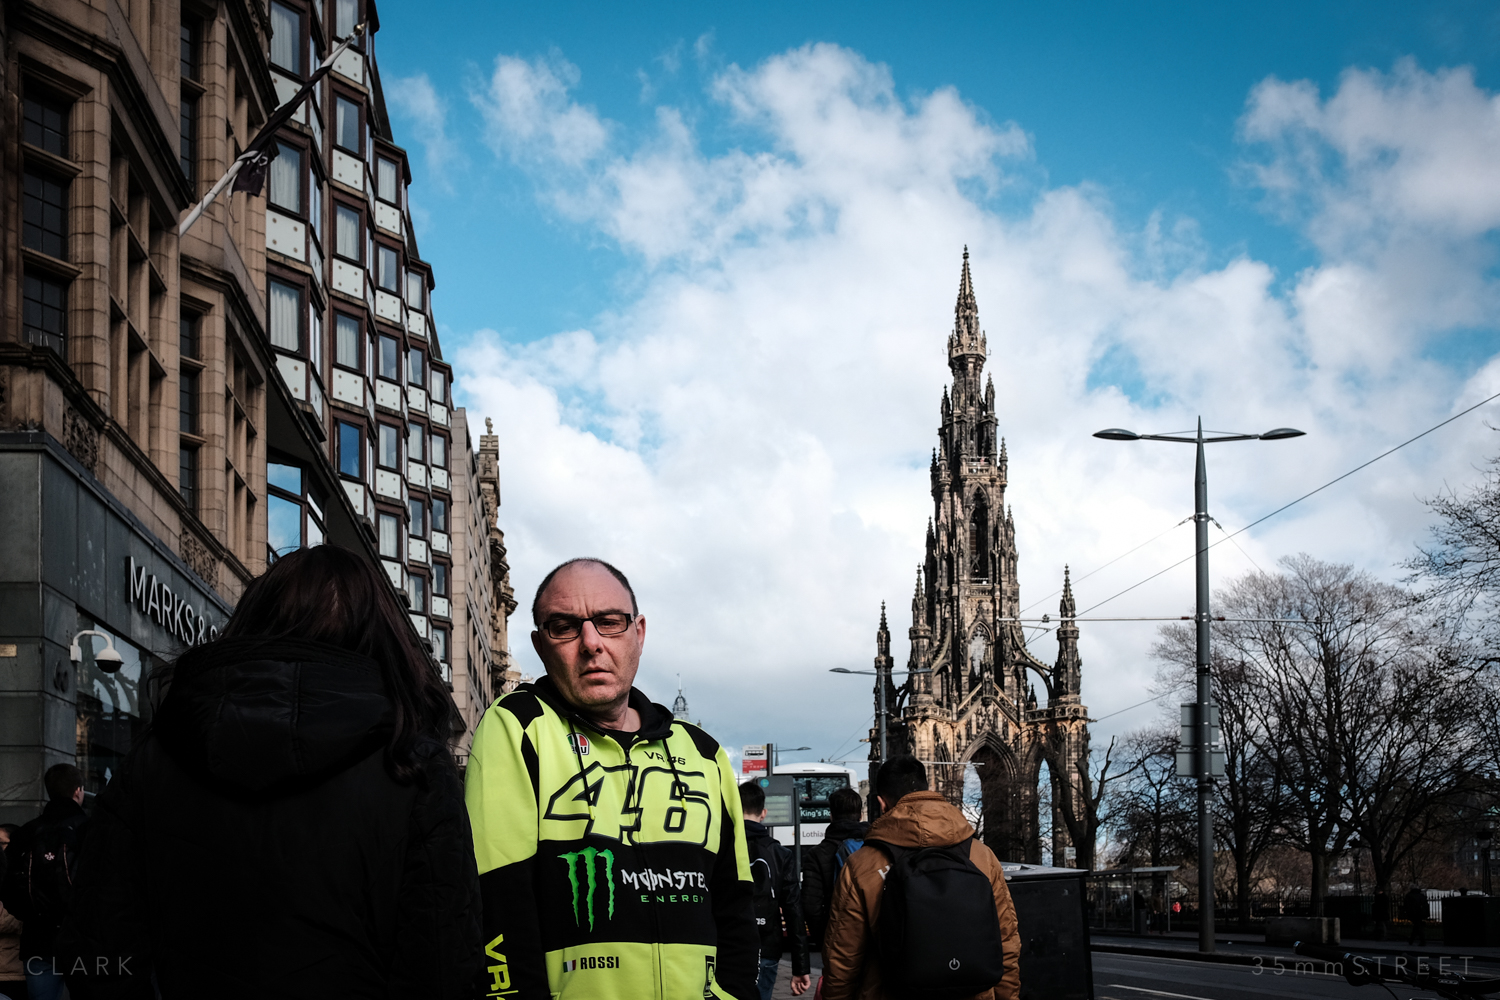 016_35mmStreet-Edinburgh-Street-Photography-20190404.jpg